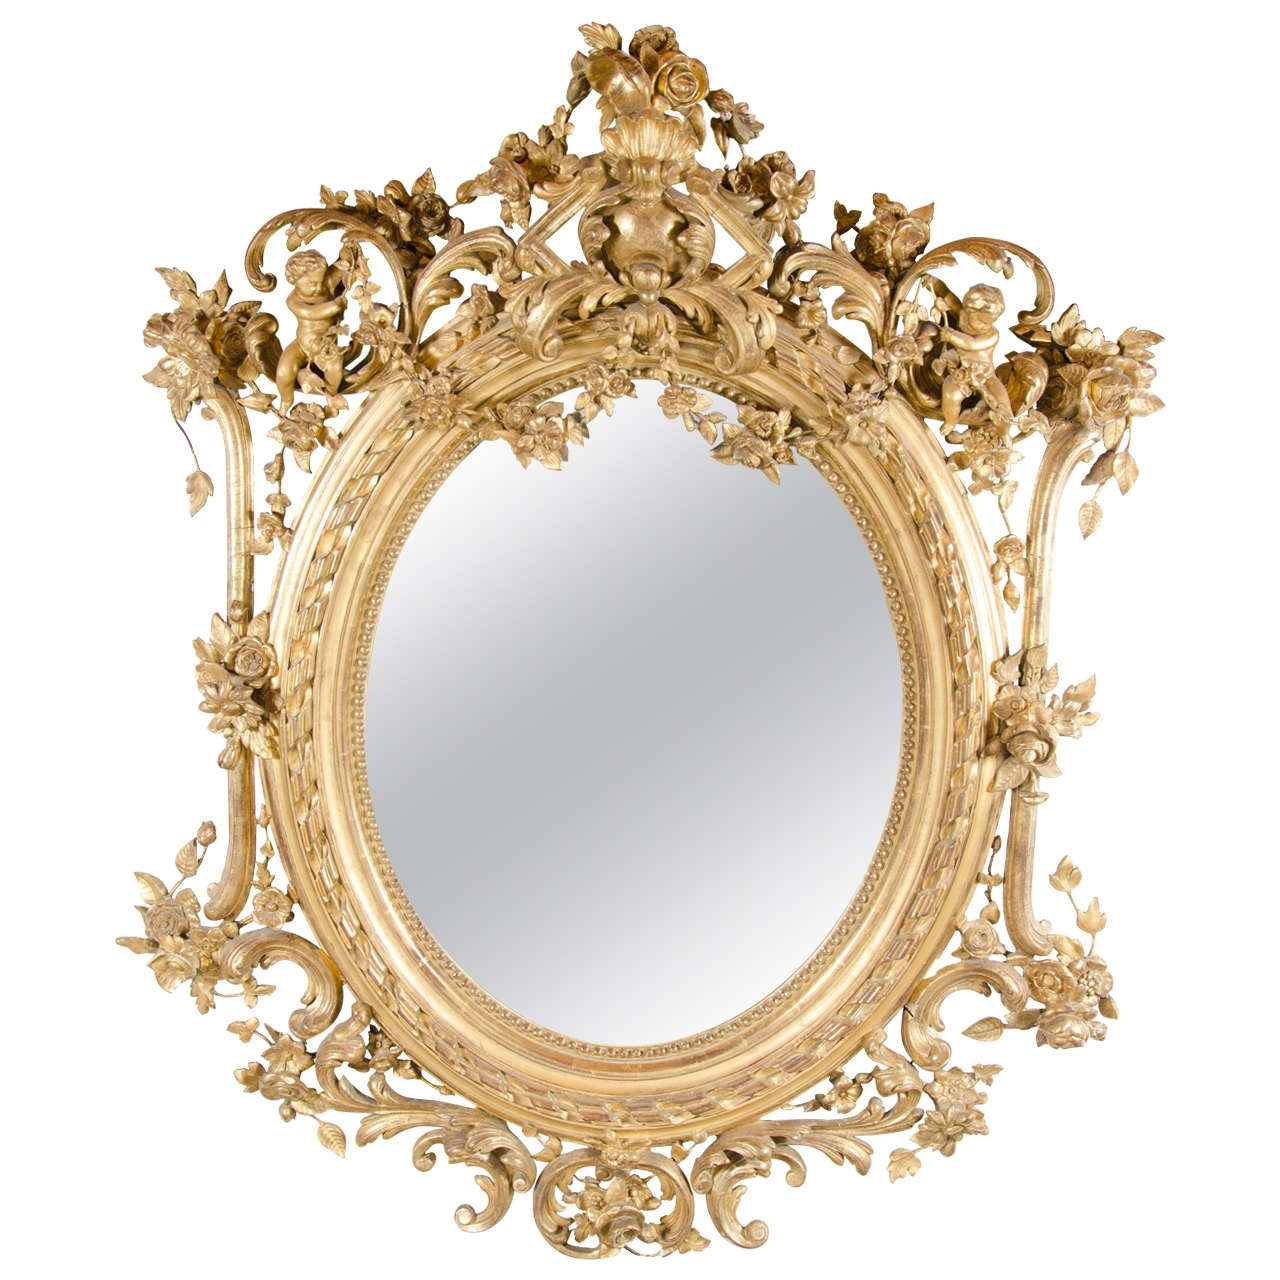 French Rococo Oval Mirror With 24 Karat Gold Gilt And Foliage With Regard To Rococo Style Mirrors (Image 4 of 15)